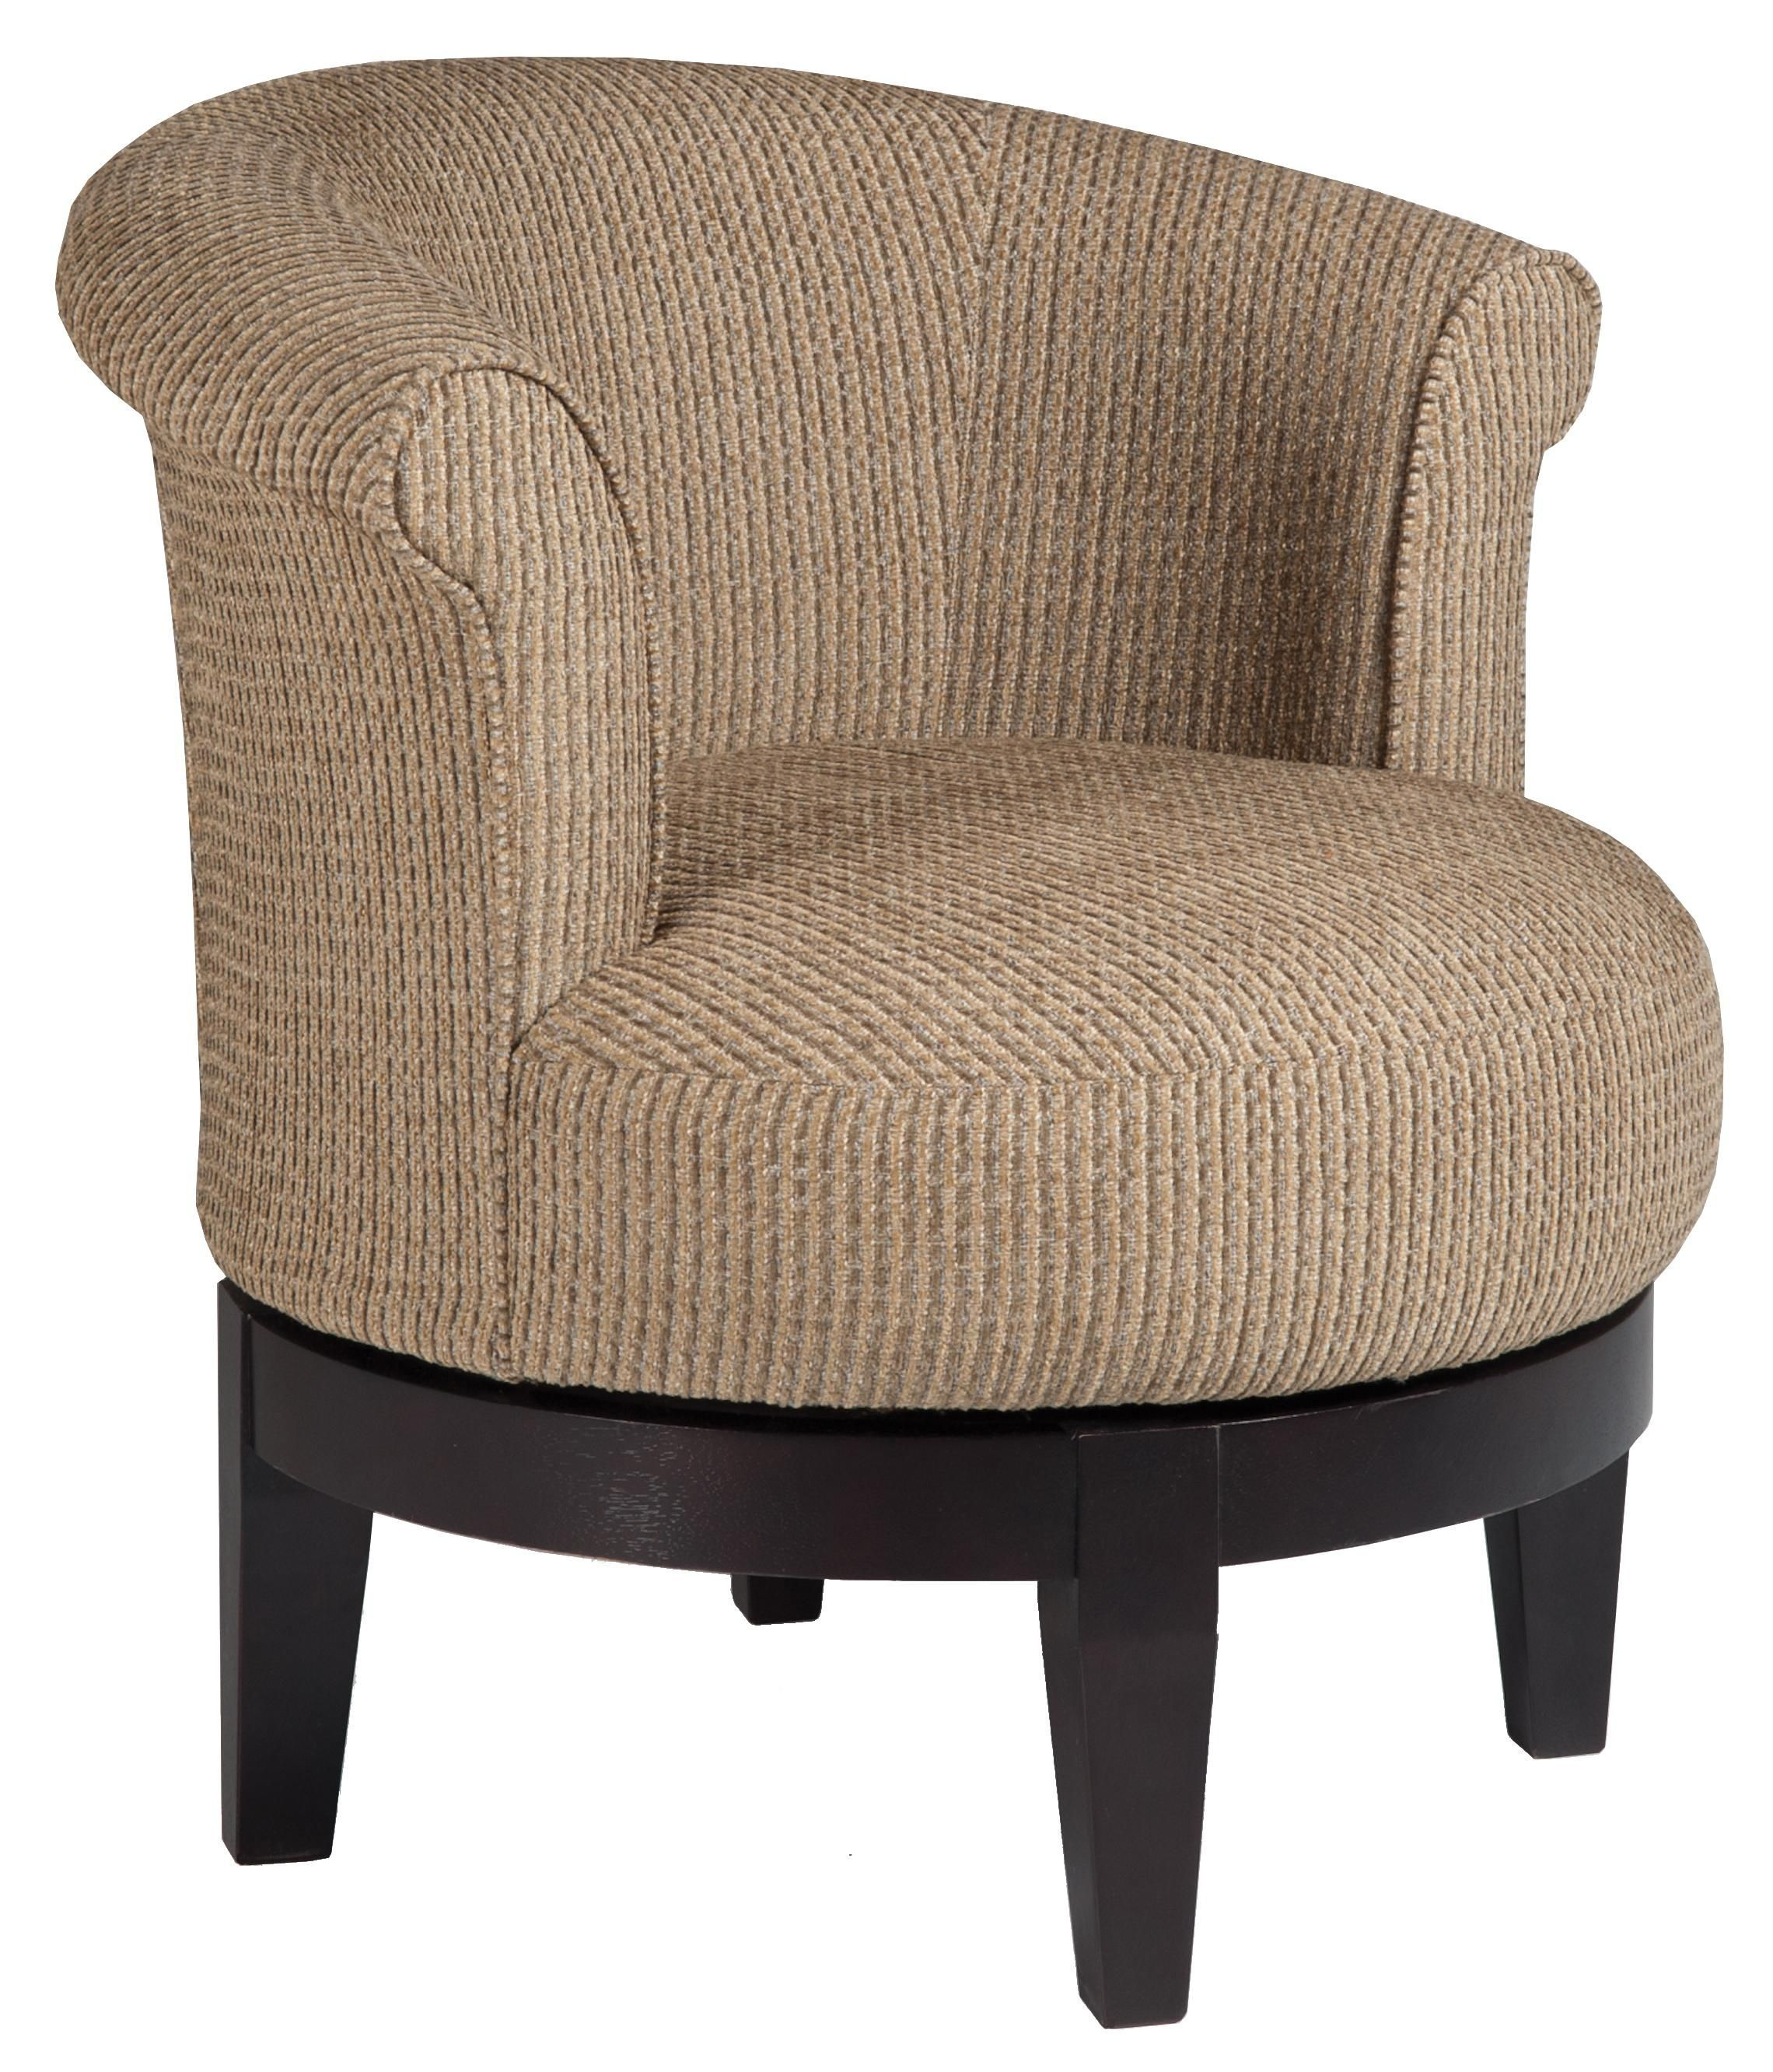 Chairs – Swivel Barrel Attica Swivel Chairbest Home Furnishings In Katrina Beige Swivel Glider Chairs (Image 5 of 20)